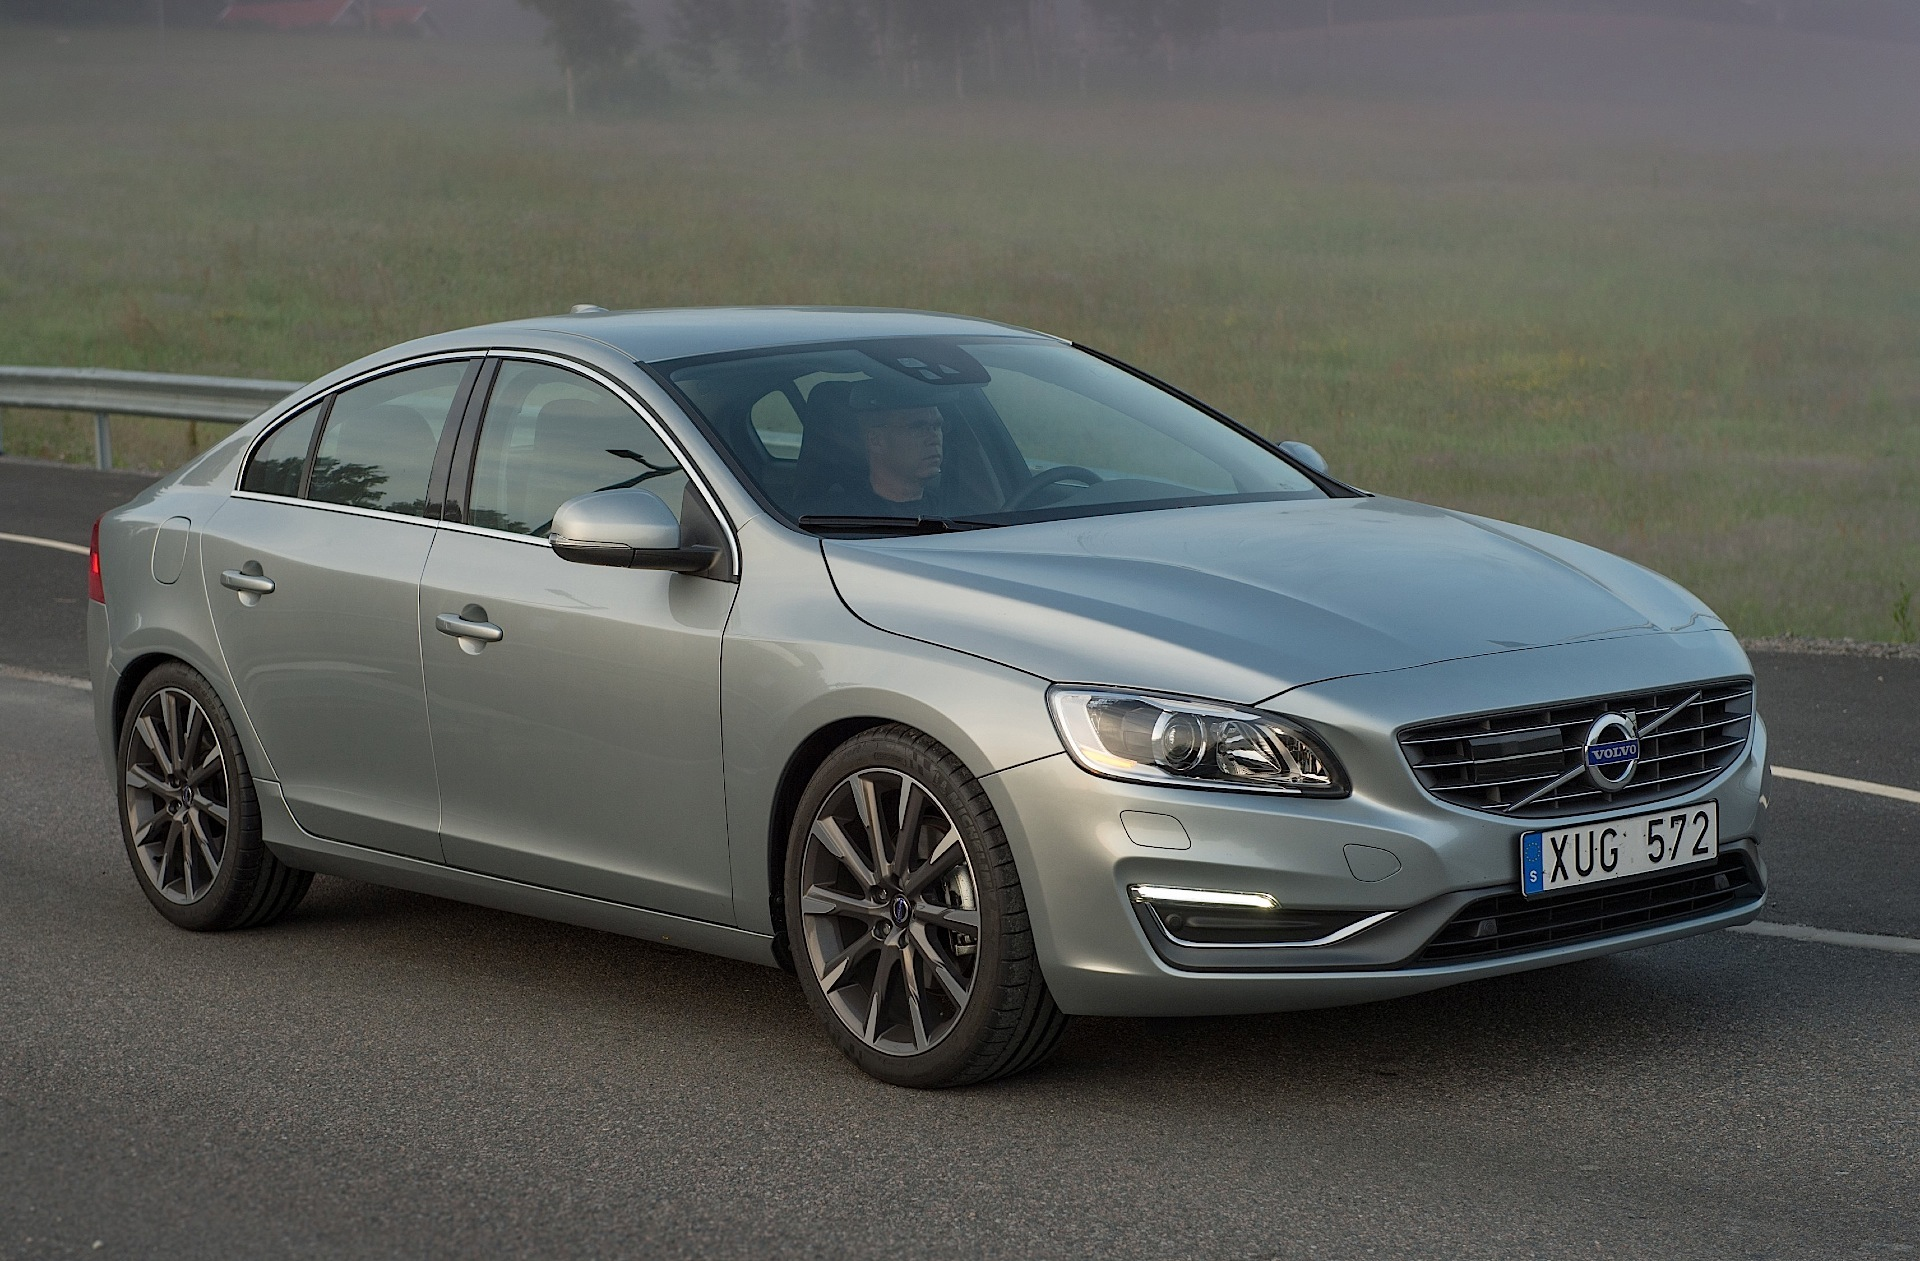 volvo s60 specs photos 2013 2014 2015 2016 2017 2018 autoevolution. Black Bedroom Furniture Sets. Home Design Ideas